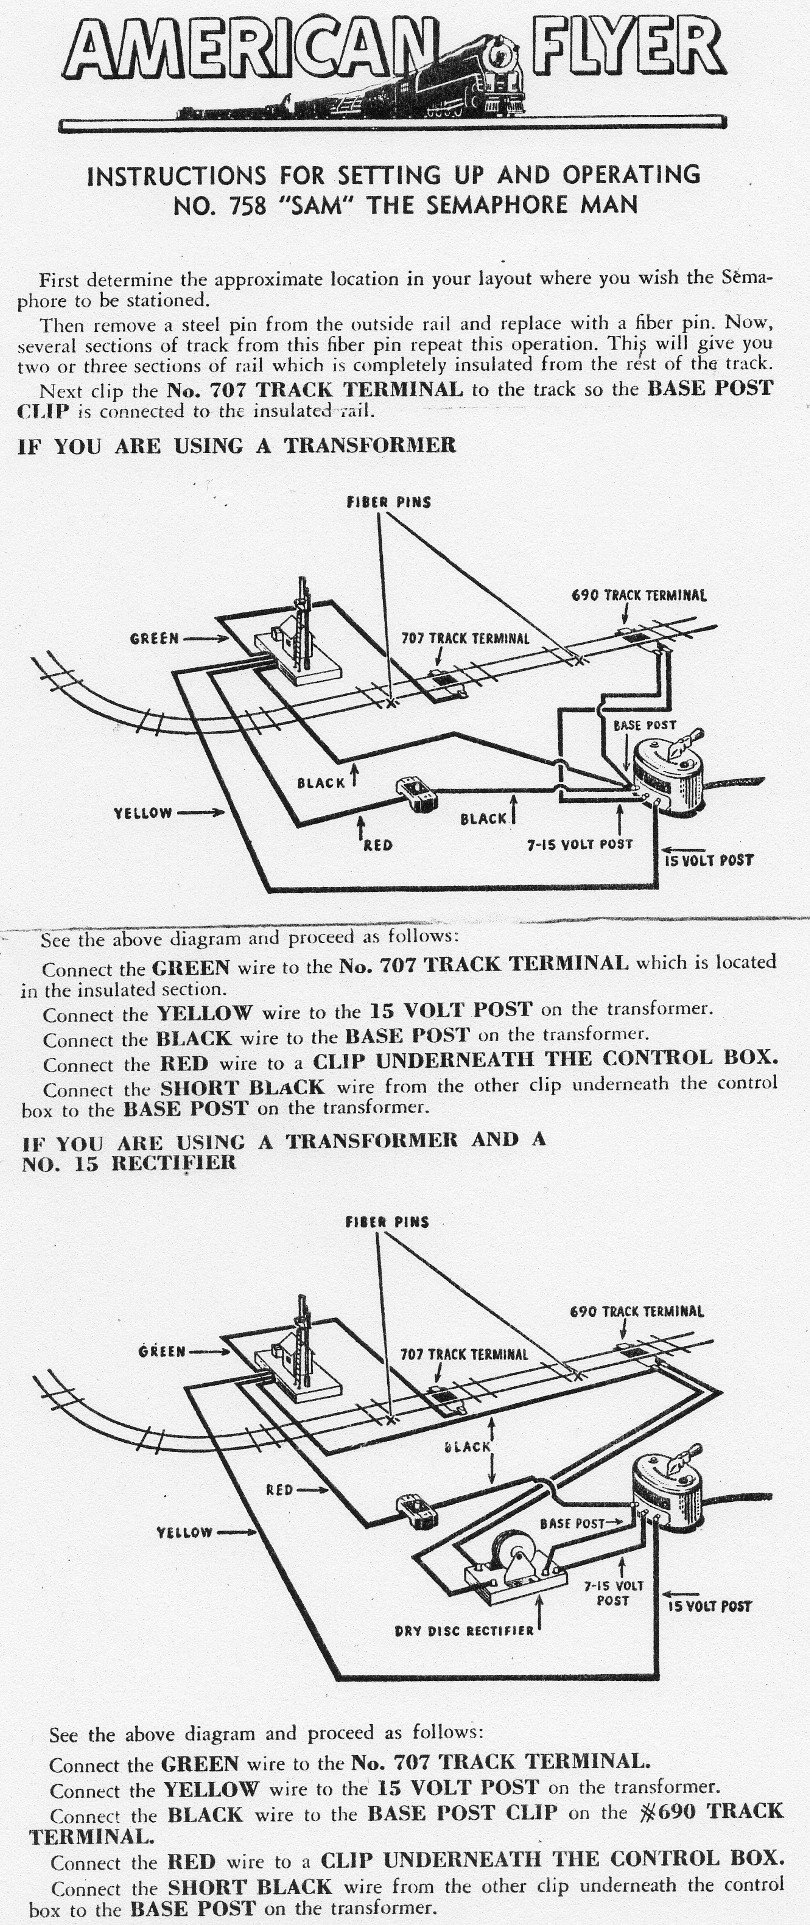 Instructions for Setting Up and Operating No. 758